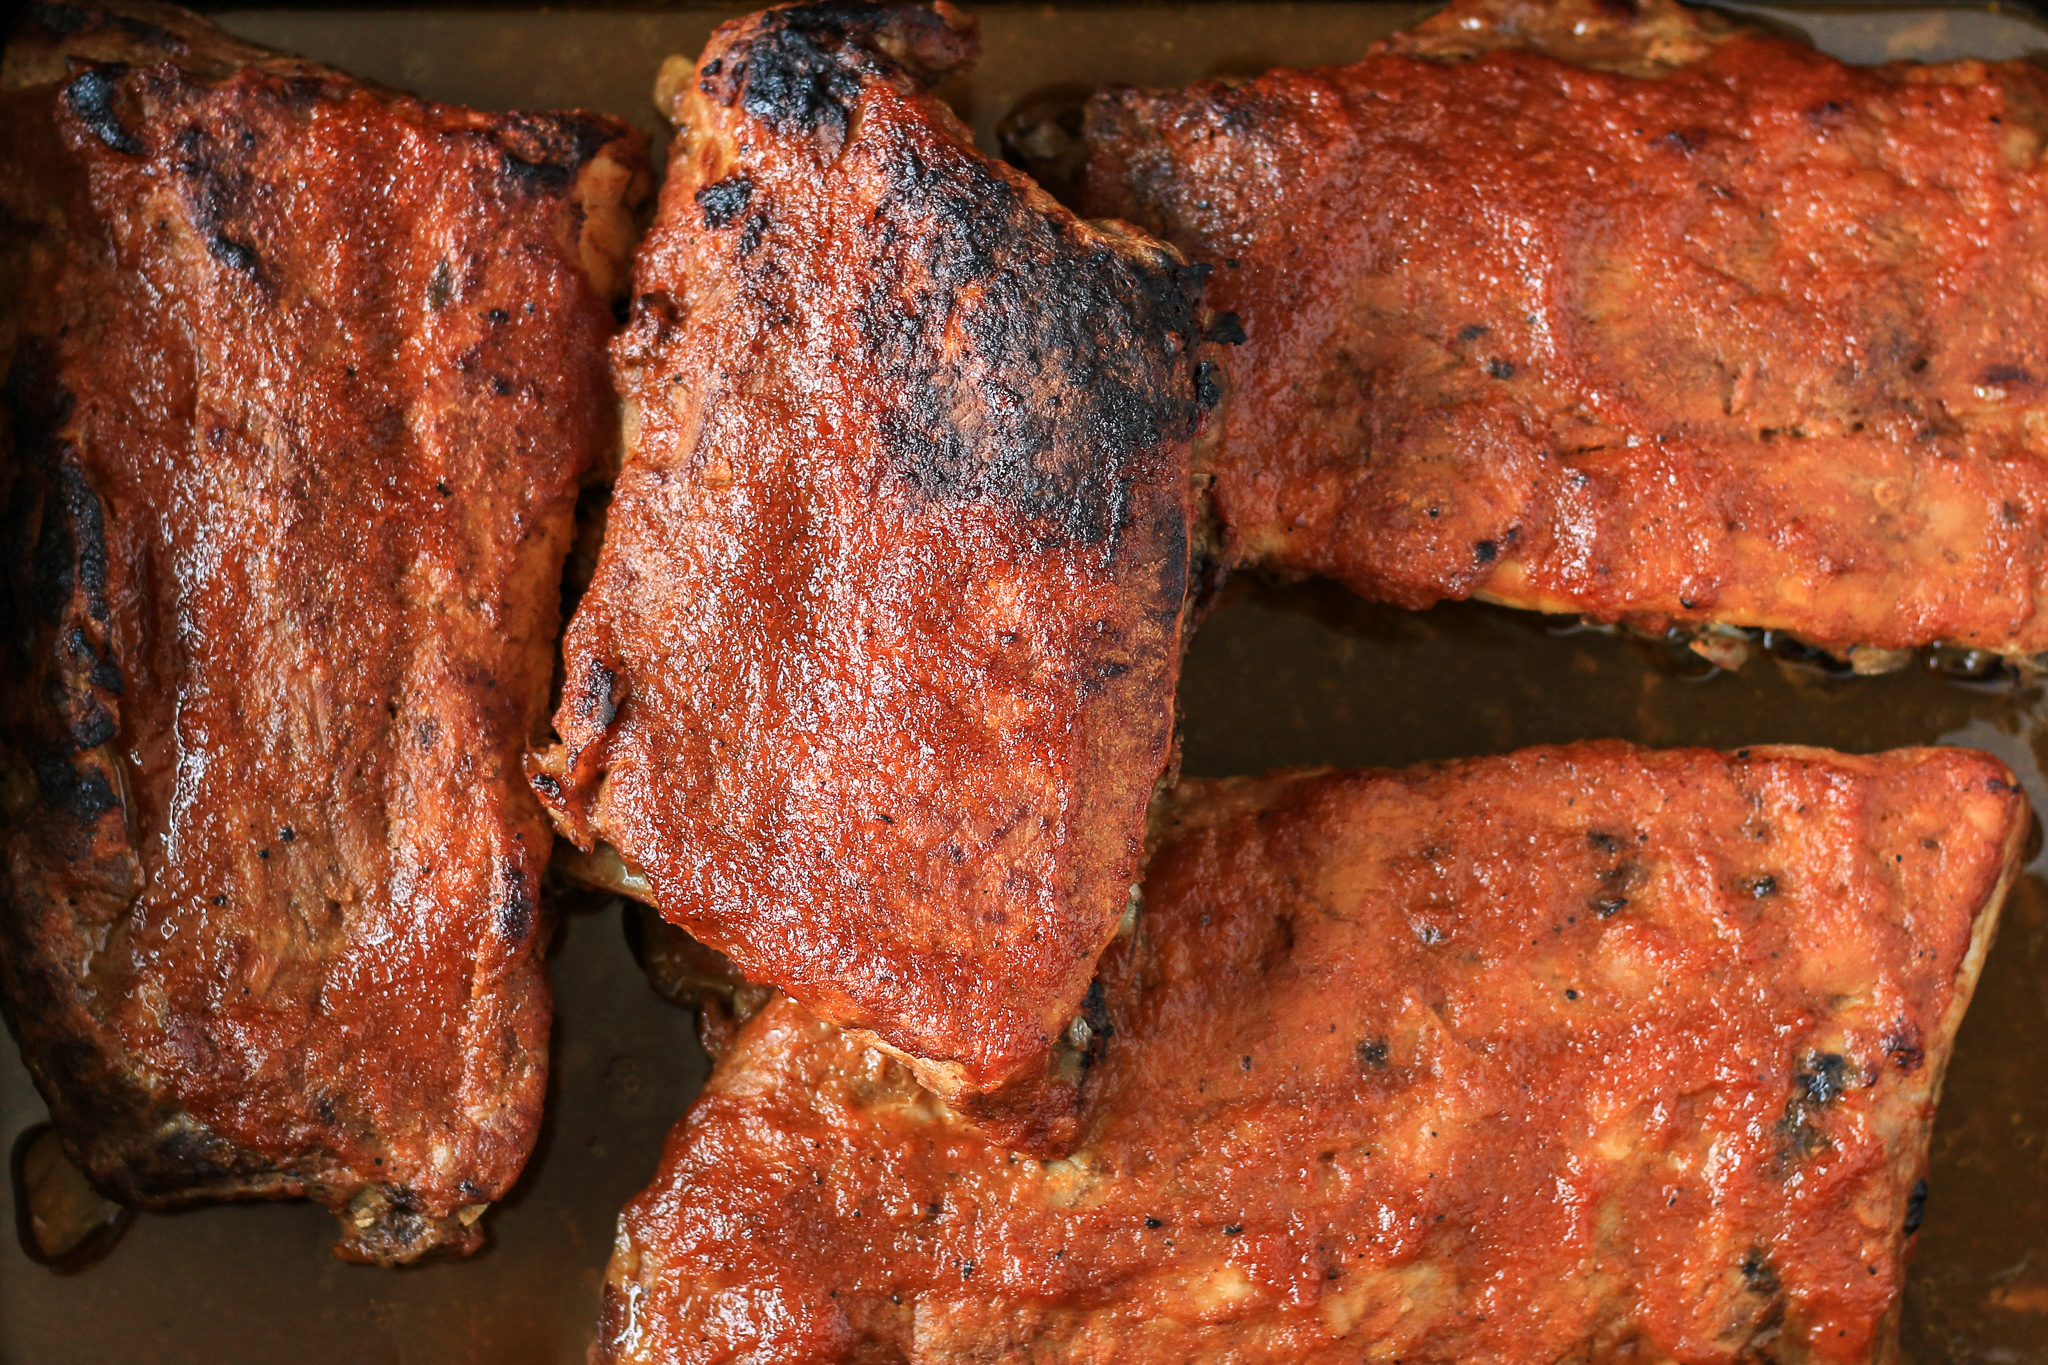 Oven-Baked Ribs with Kickin' Peach BBQ Sauce